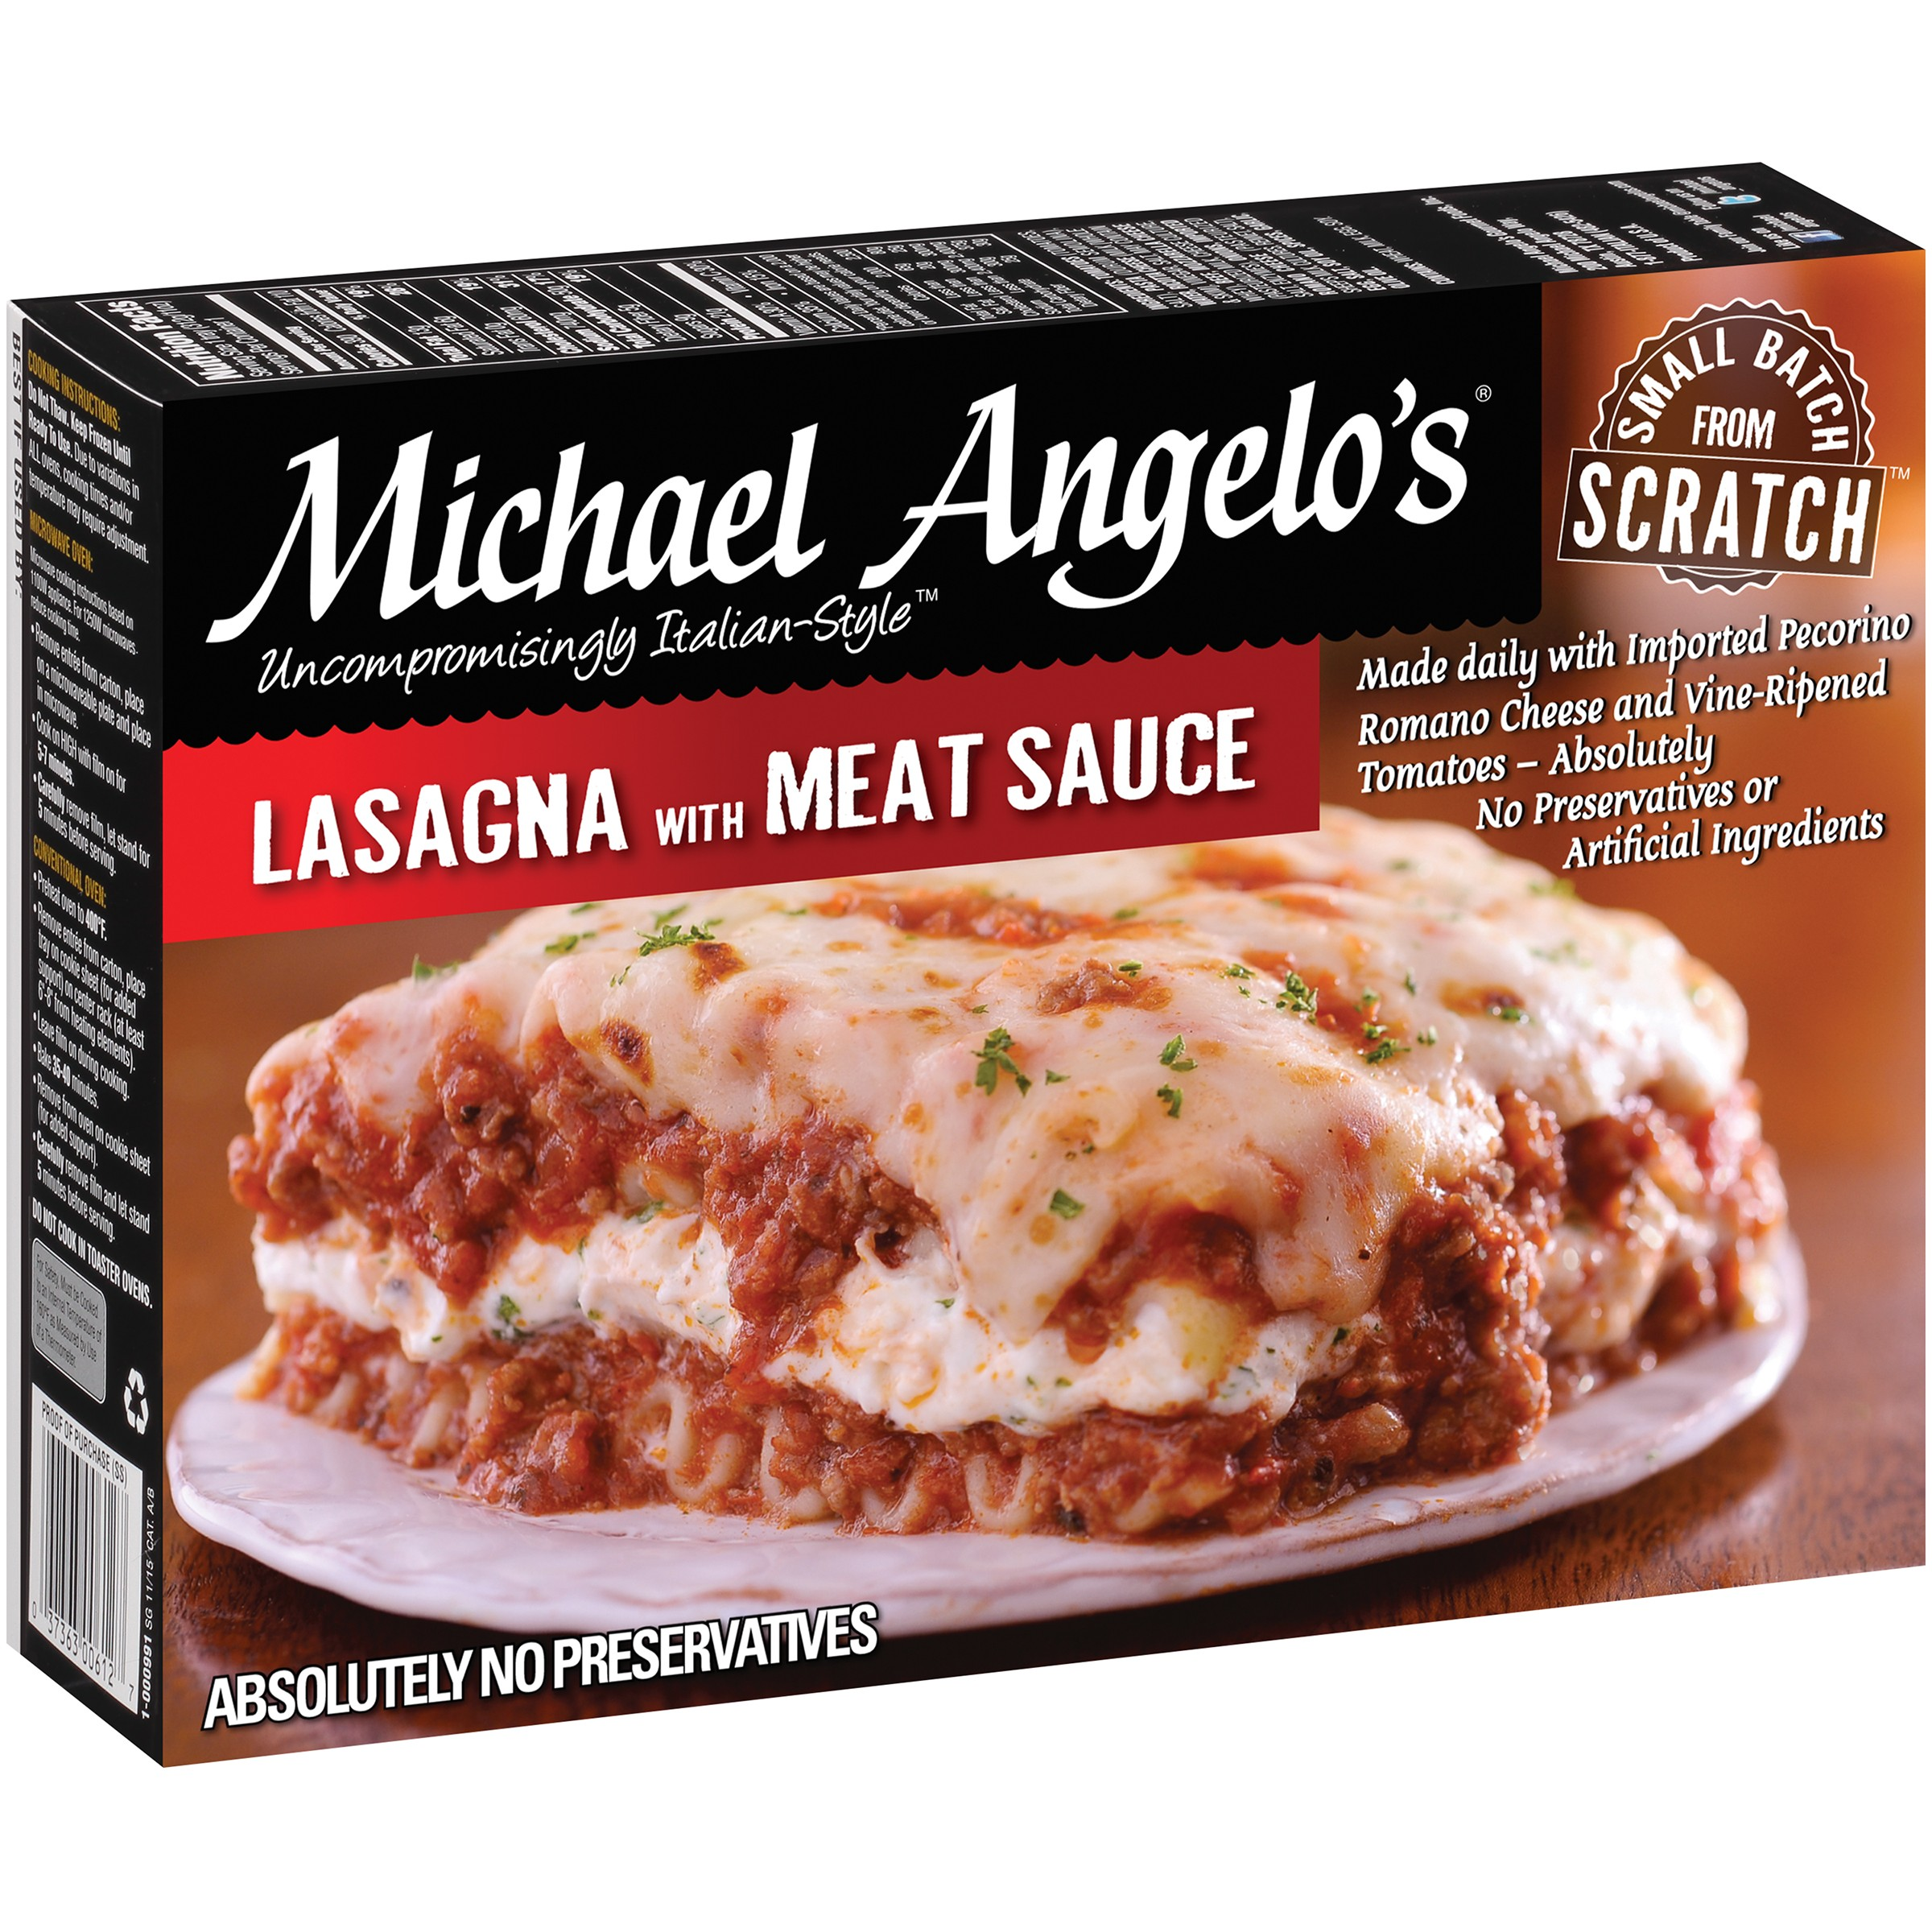 Michael Angelo's Lasagna with Meat Sauce 11 oz. Box by Michael Angelo's Gourmet Foods, Inc.